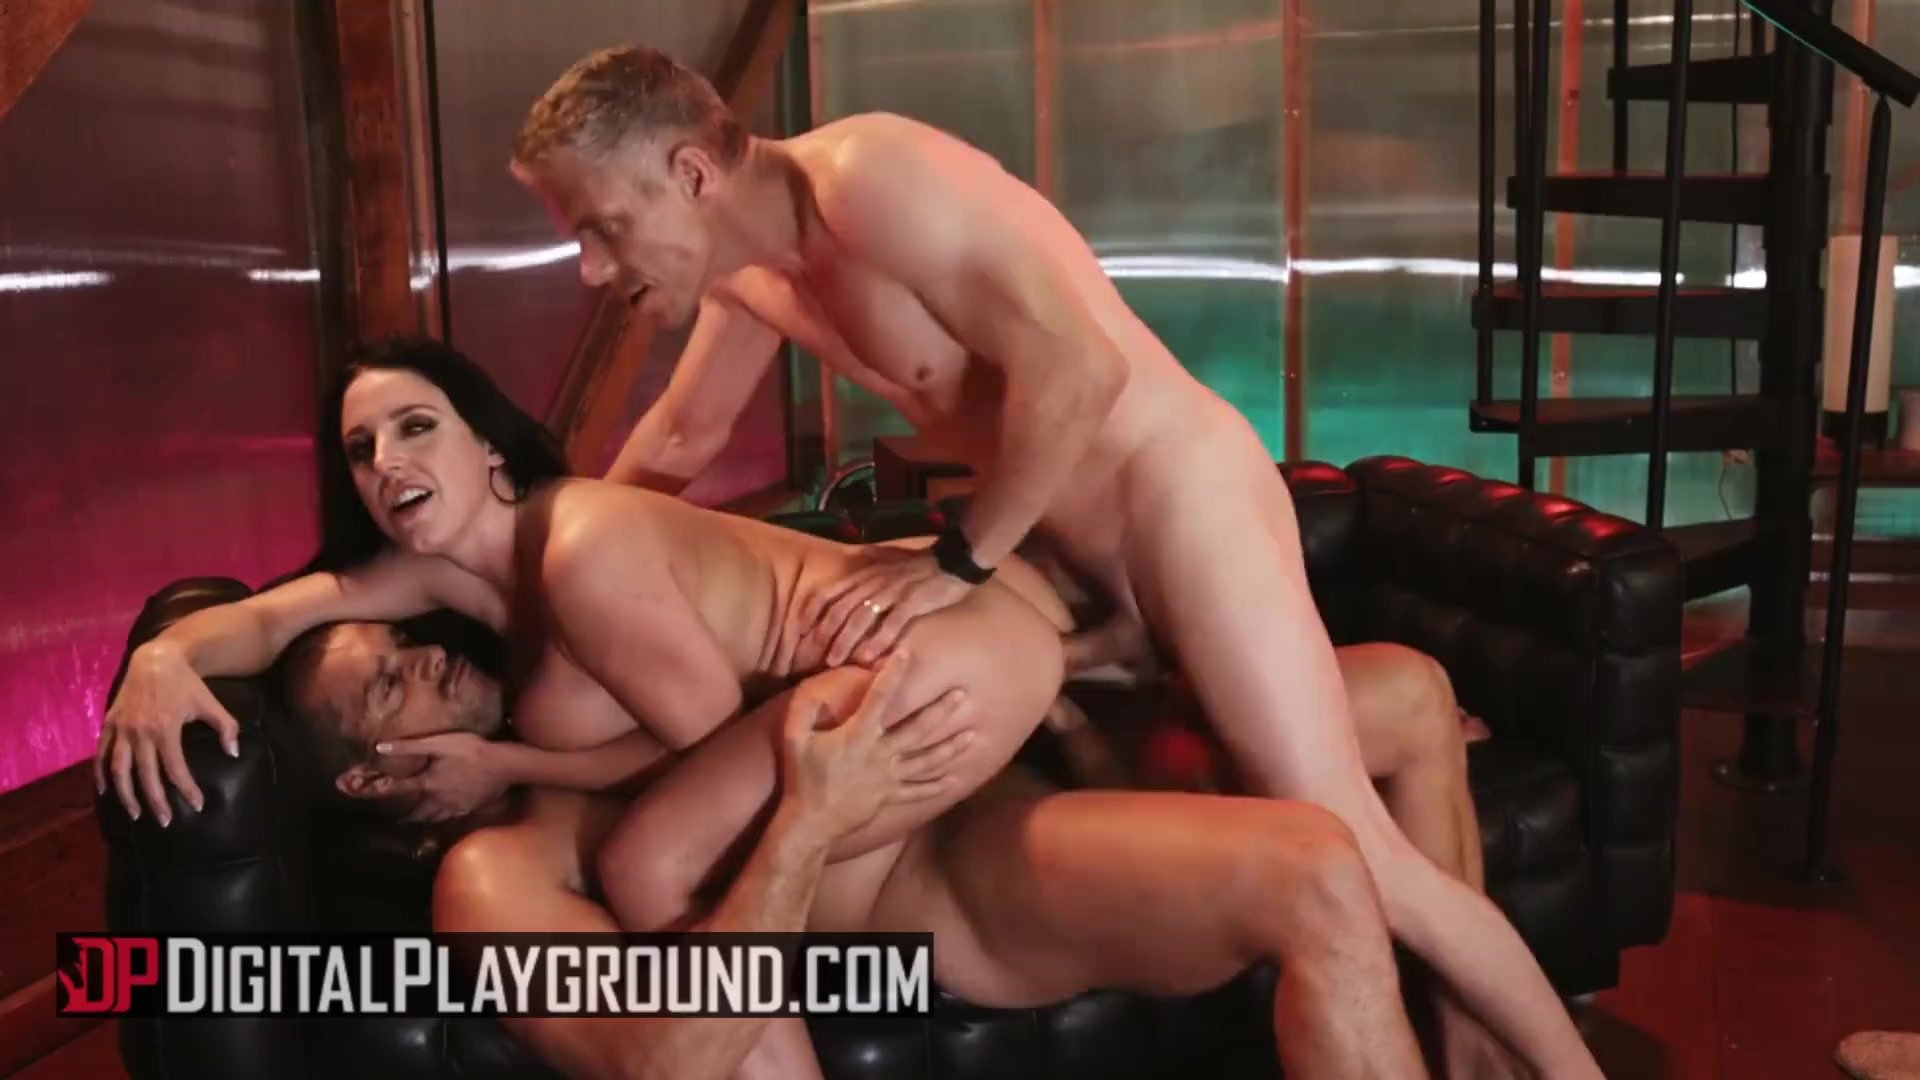 Digital Playground - Thicc busty Angela White gets DPed deep